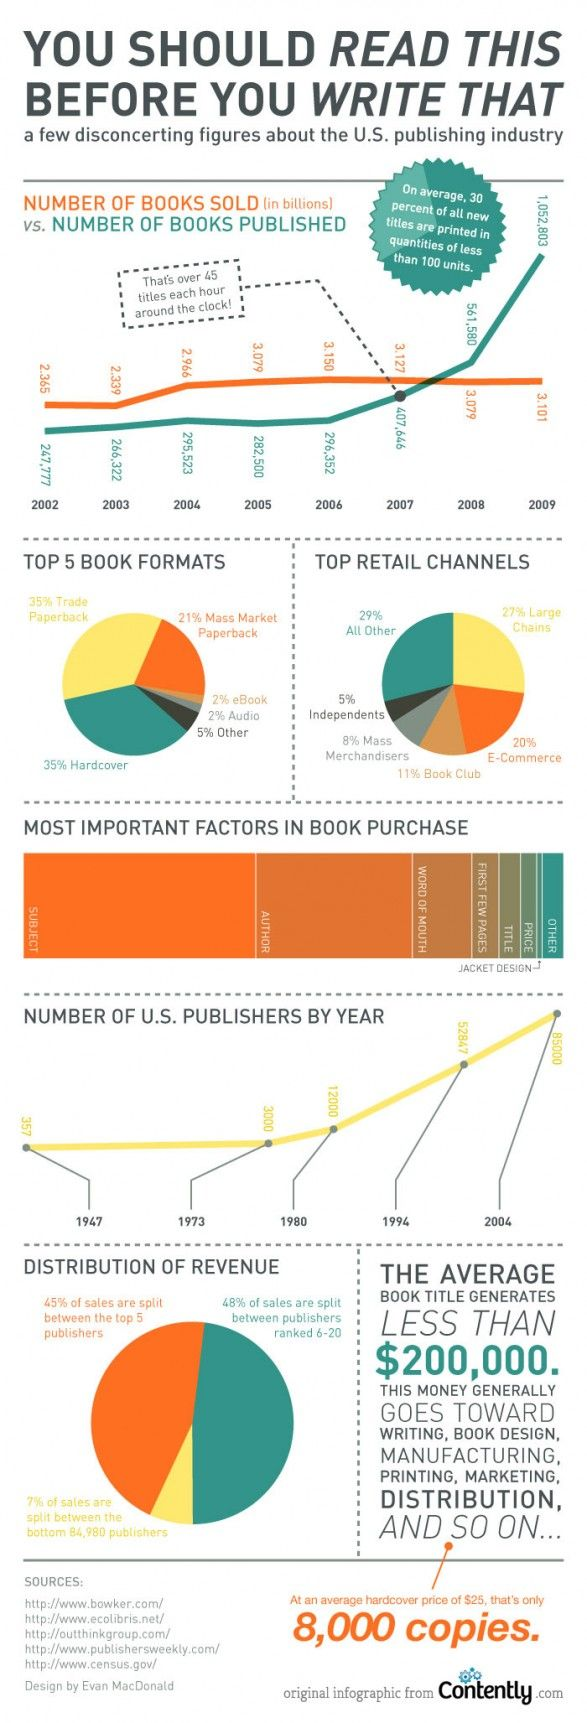 #publishing Industrygraphic